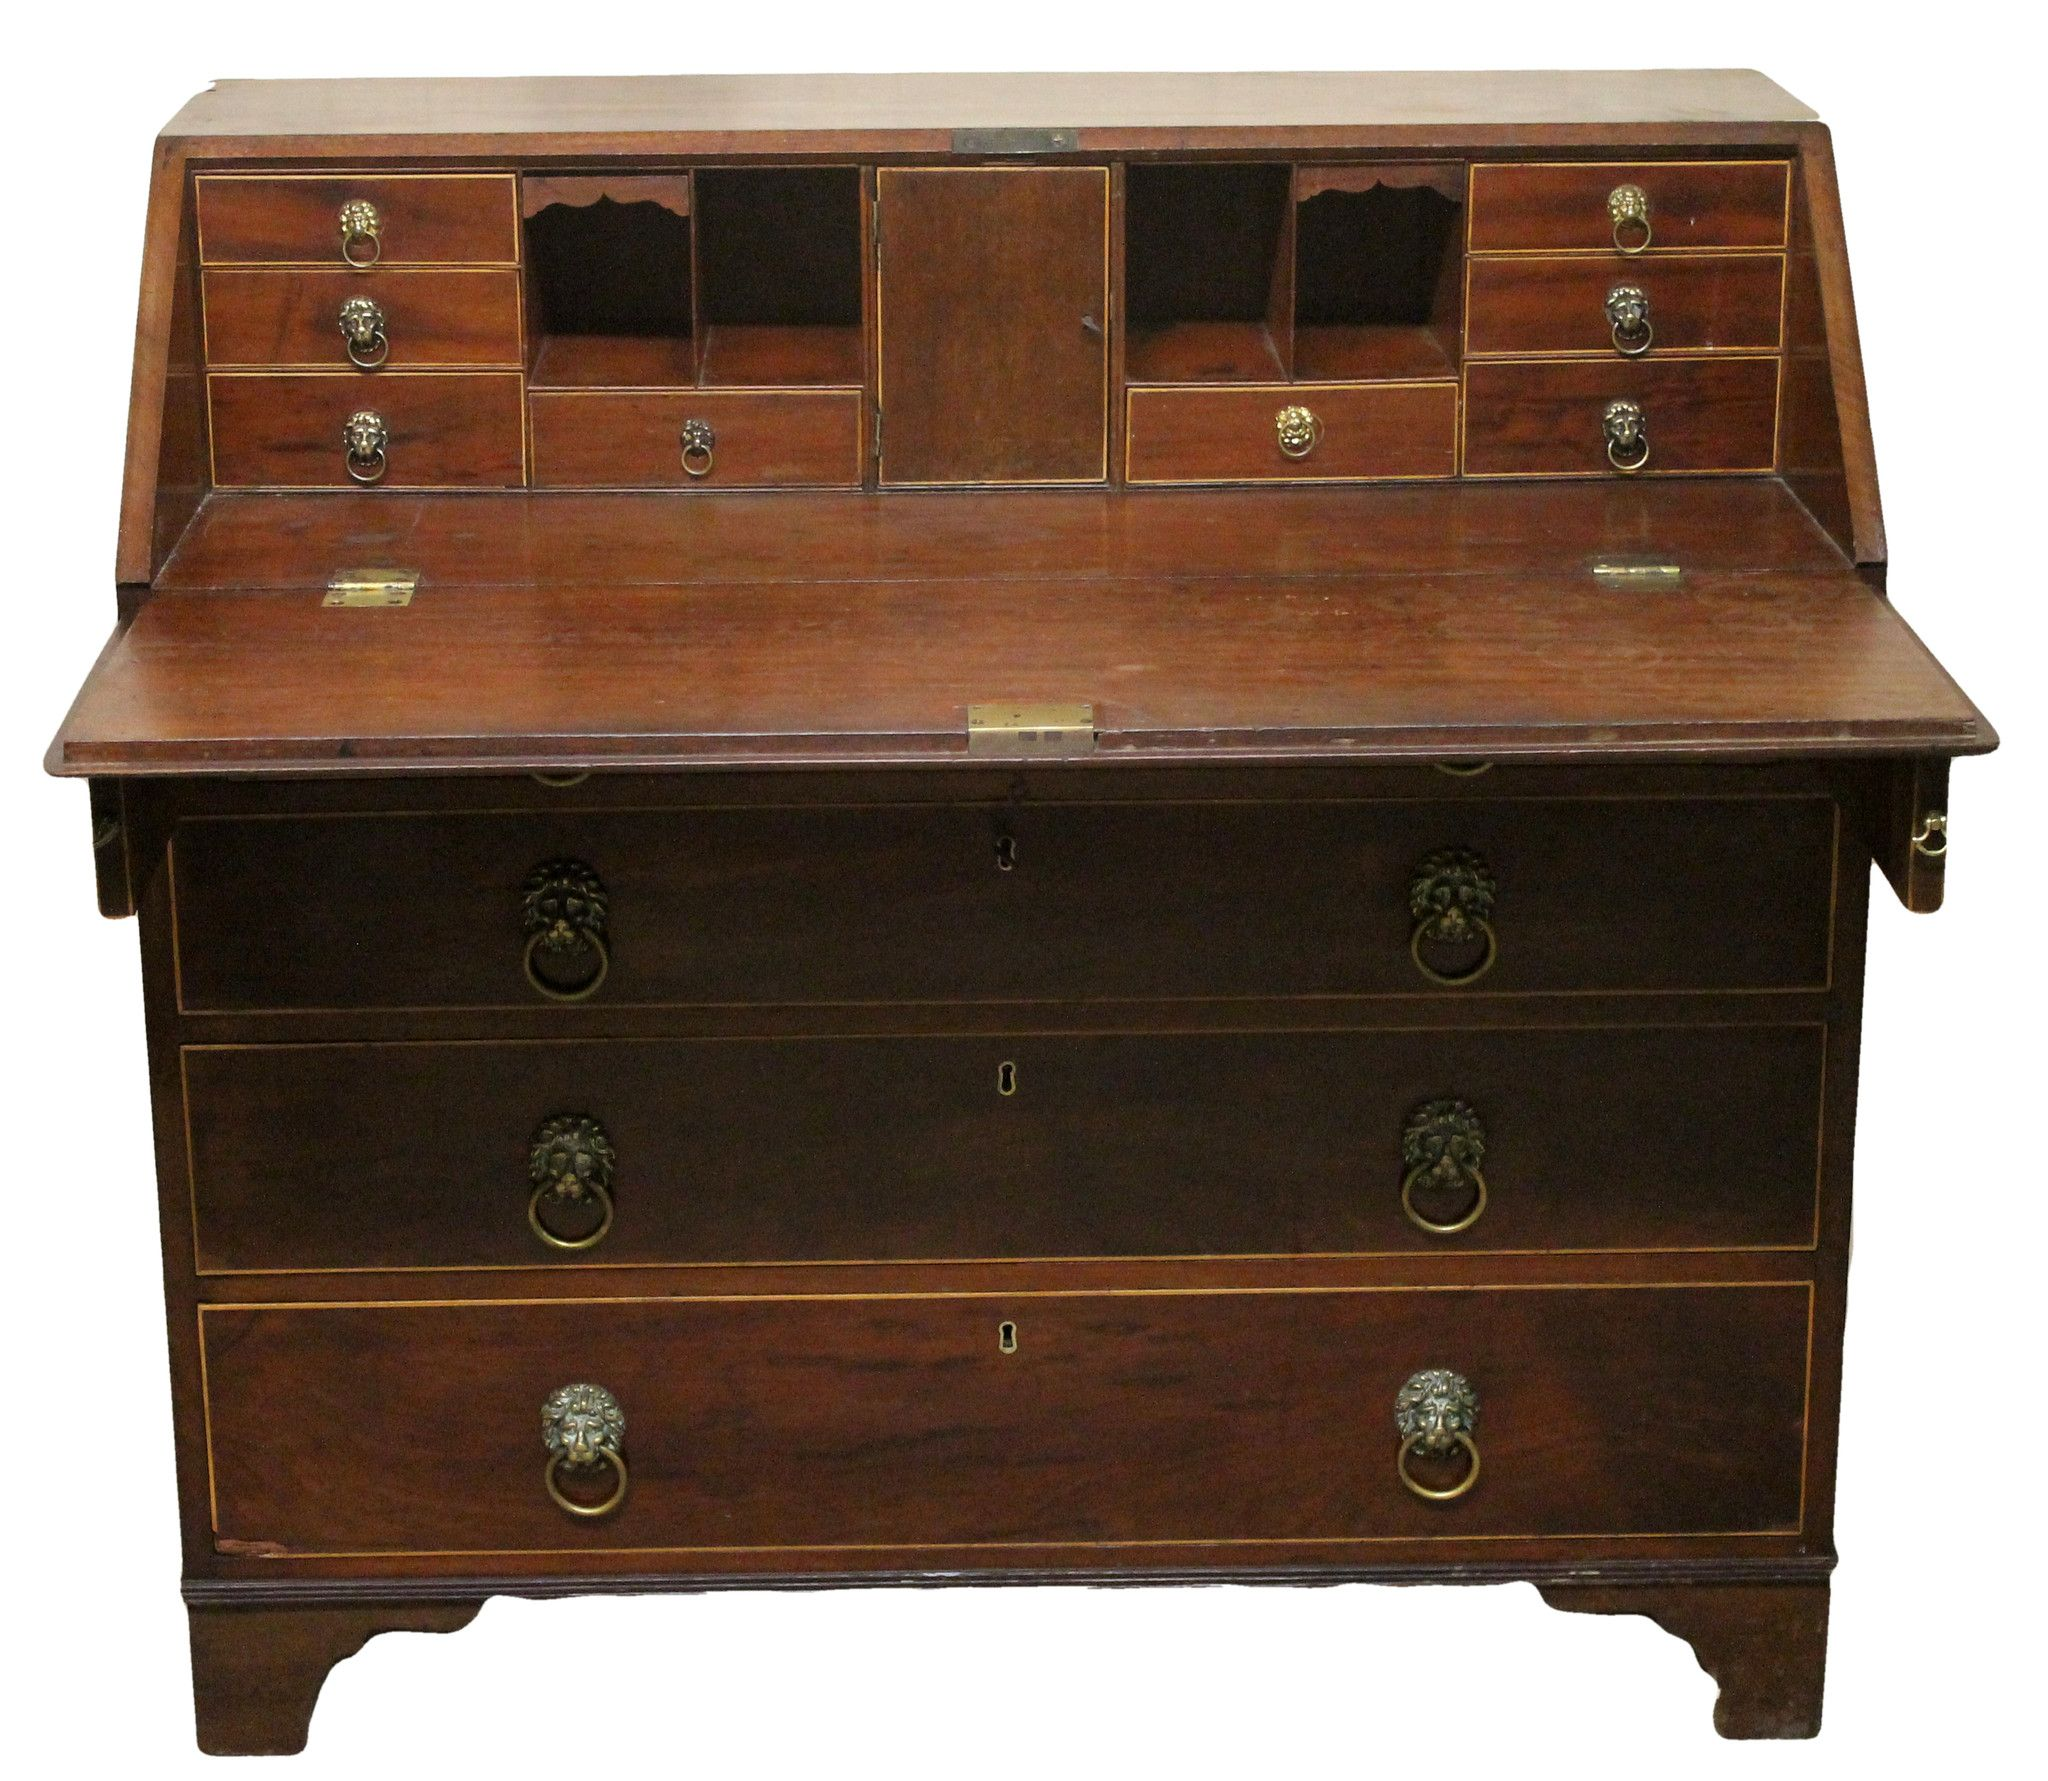 Georgian Antique Mahogany Drop Flap Bureau Buy line with Delivery